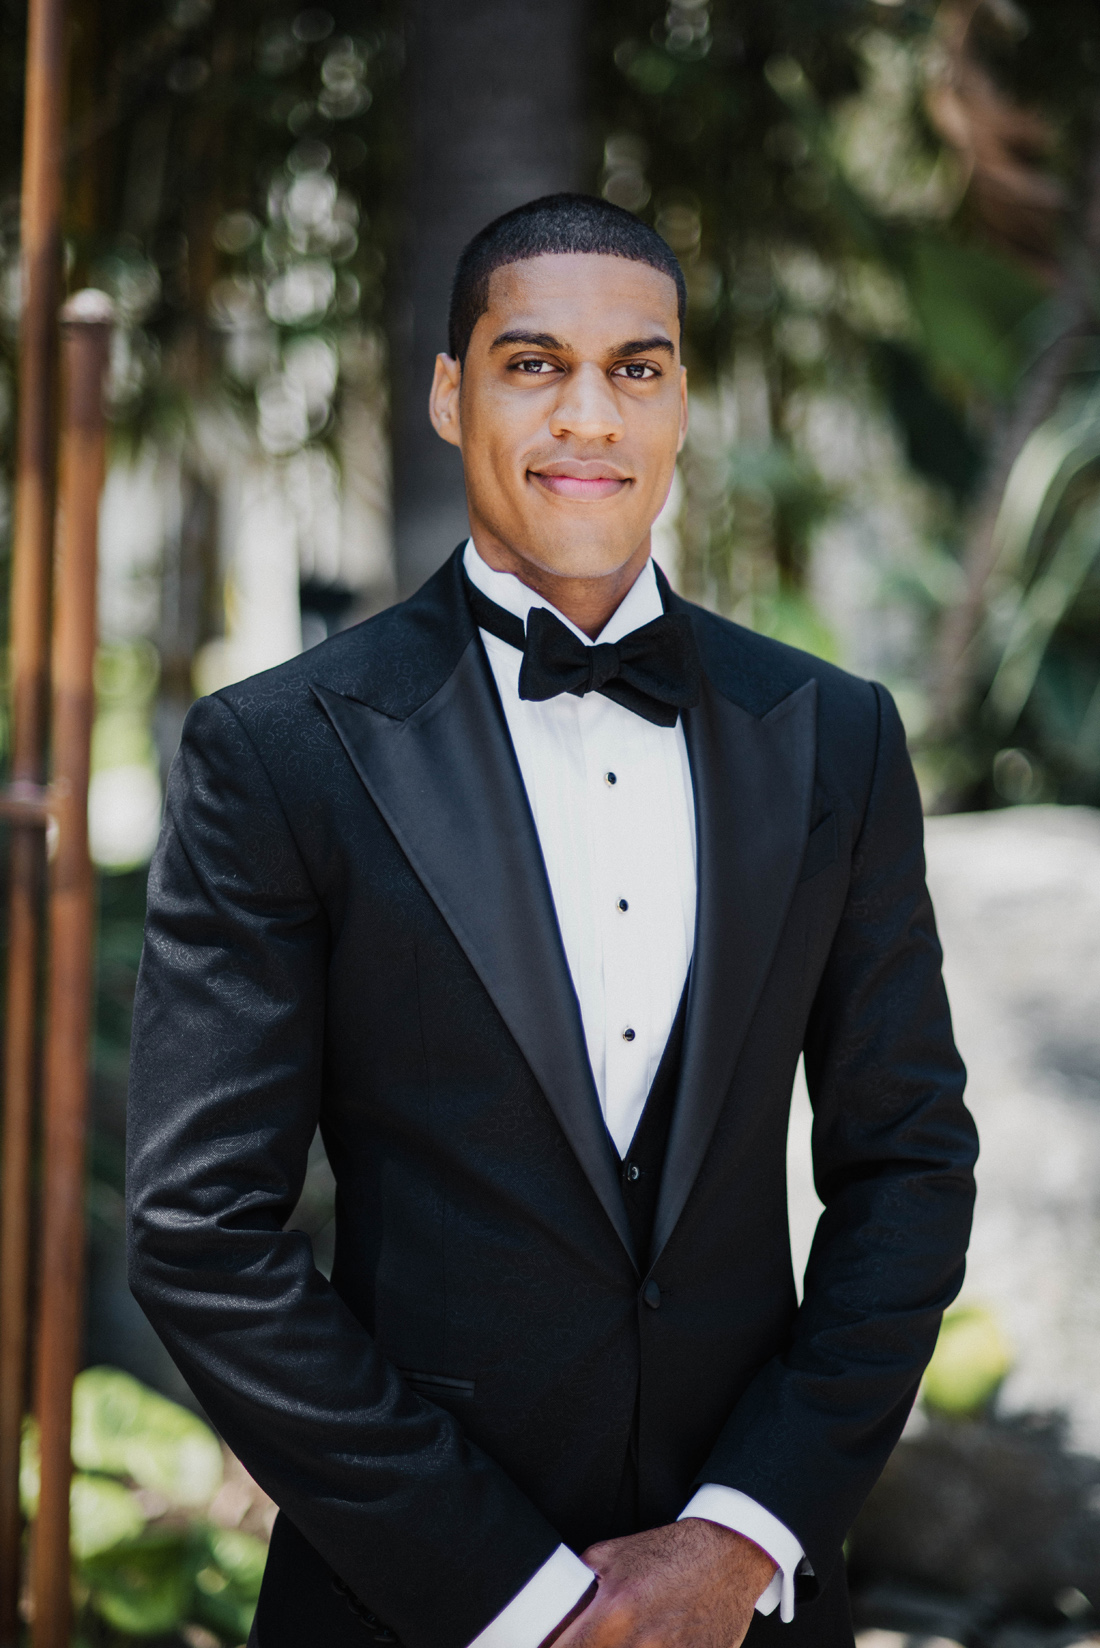 groom with subtle print tuxedo jacket black lapels groom style ideas